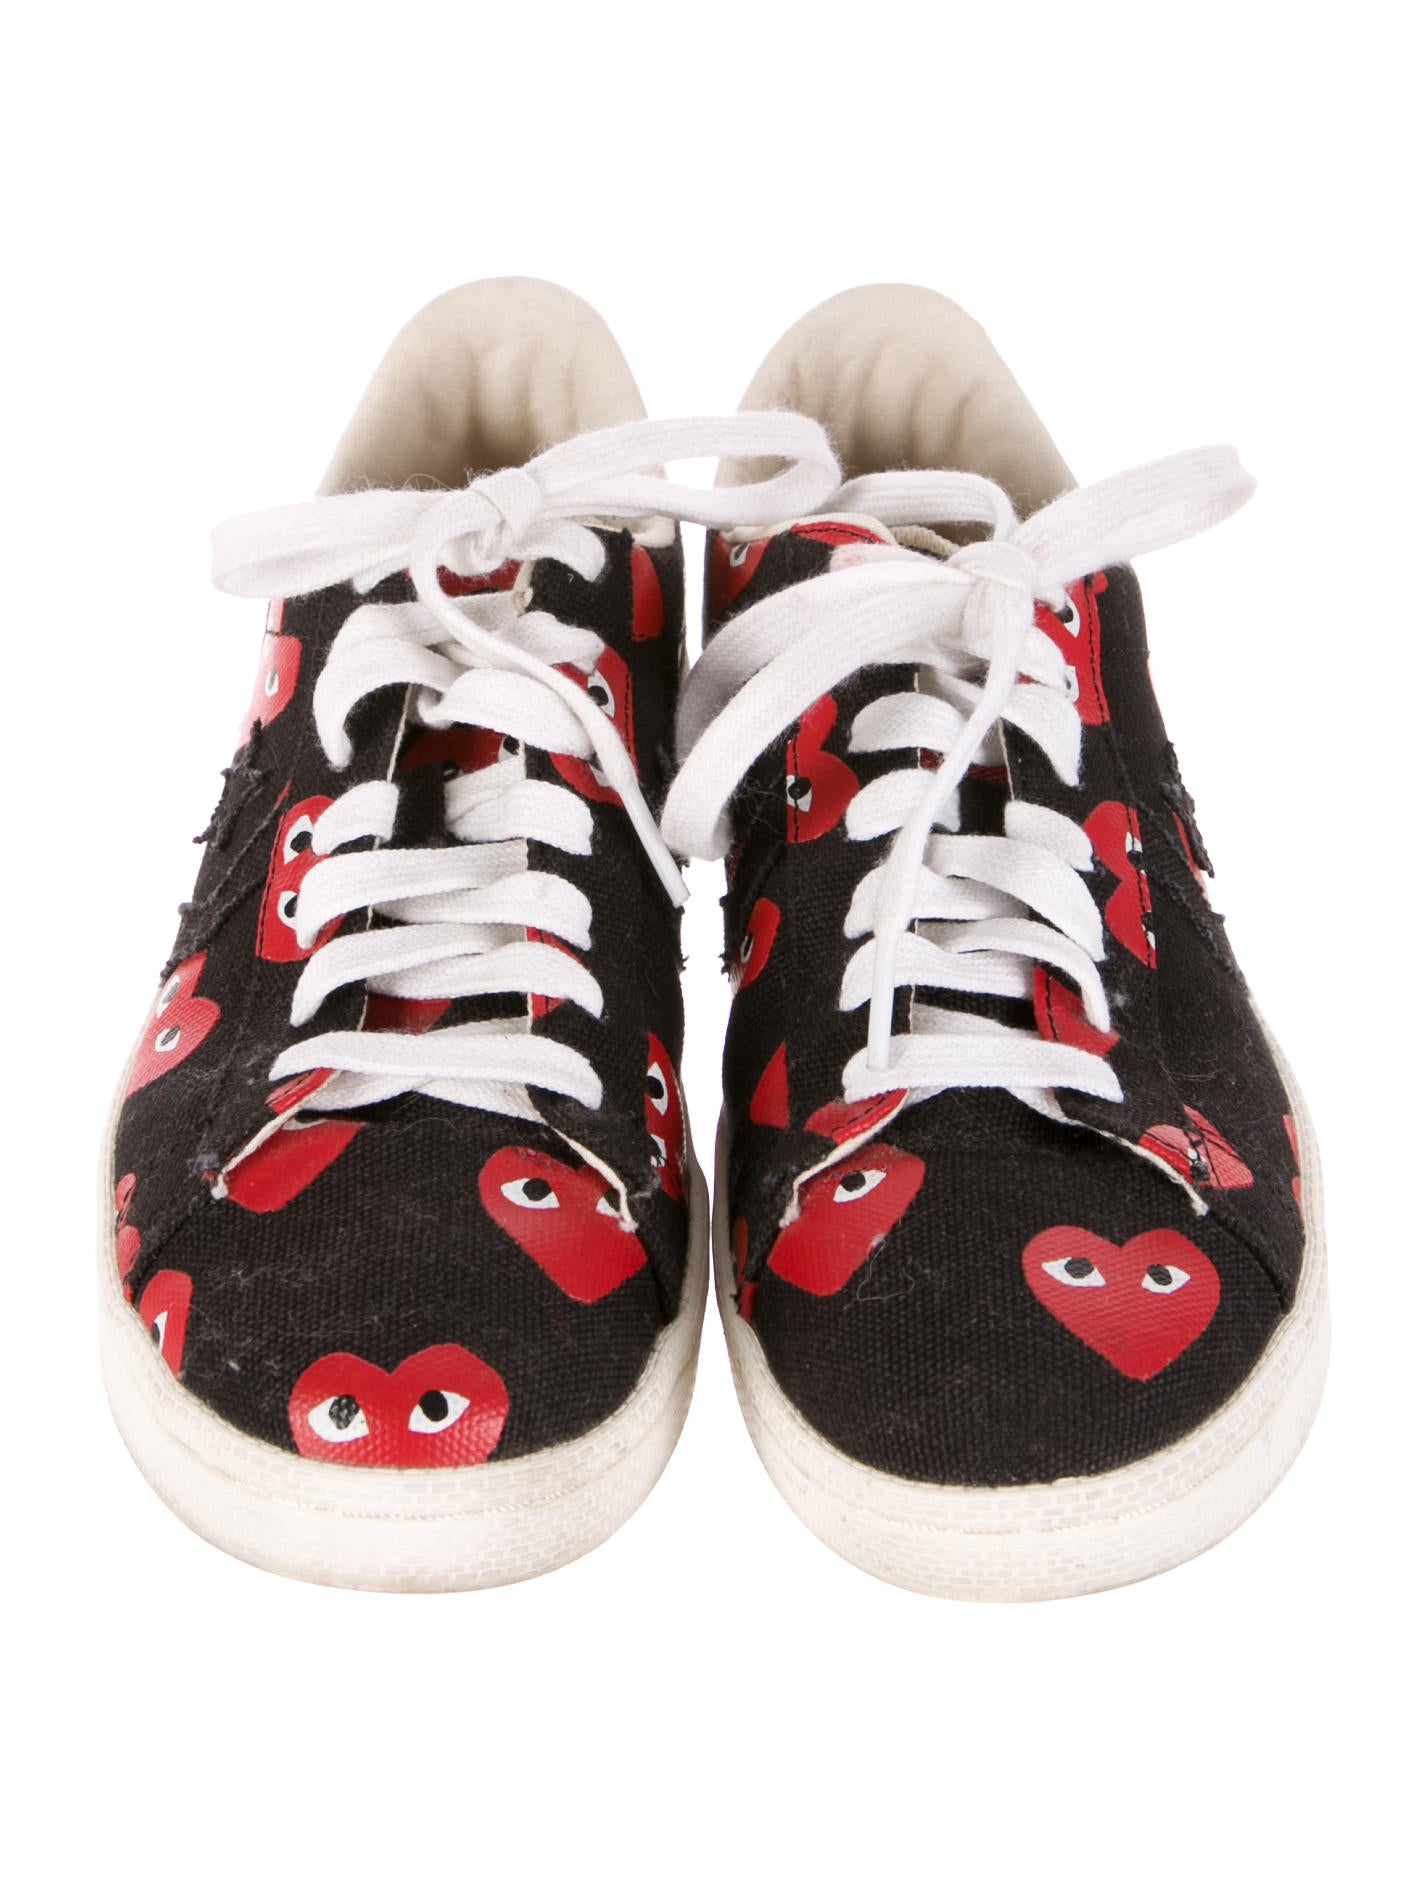 comme des gar ons play x converse sneakers shoes. Black Bedroom Furniture Sets. Home Design Ideas